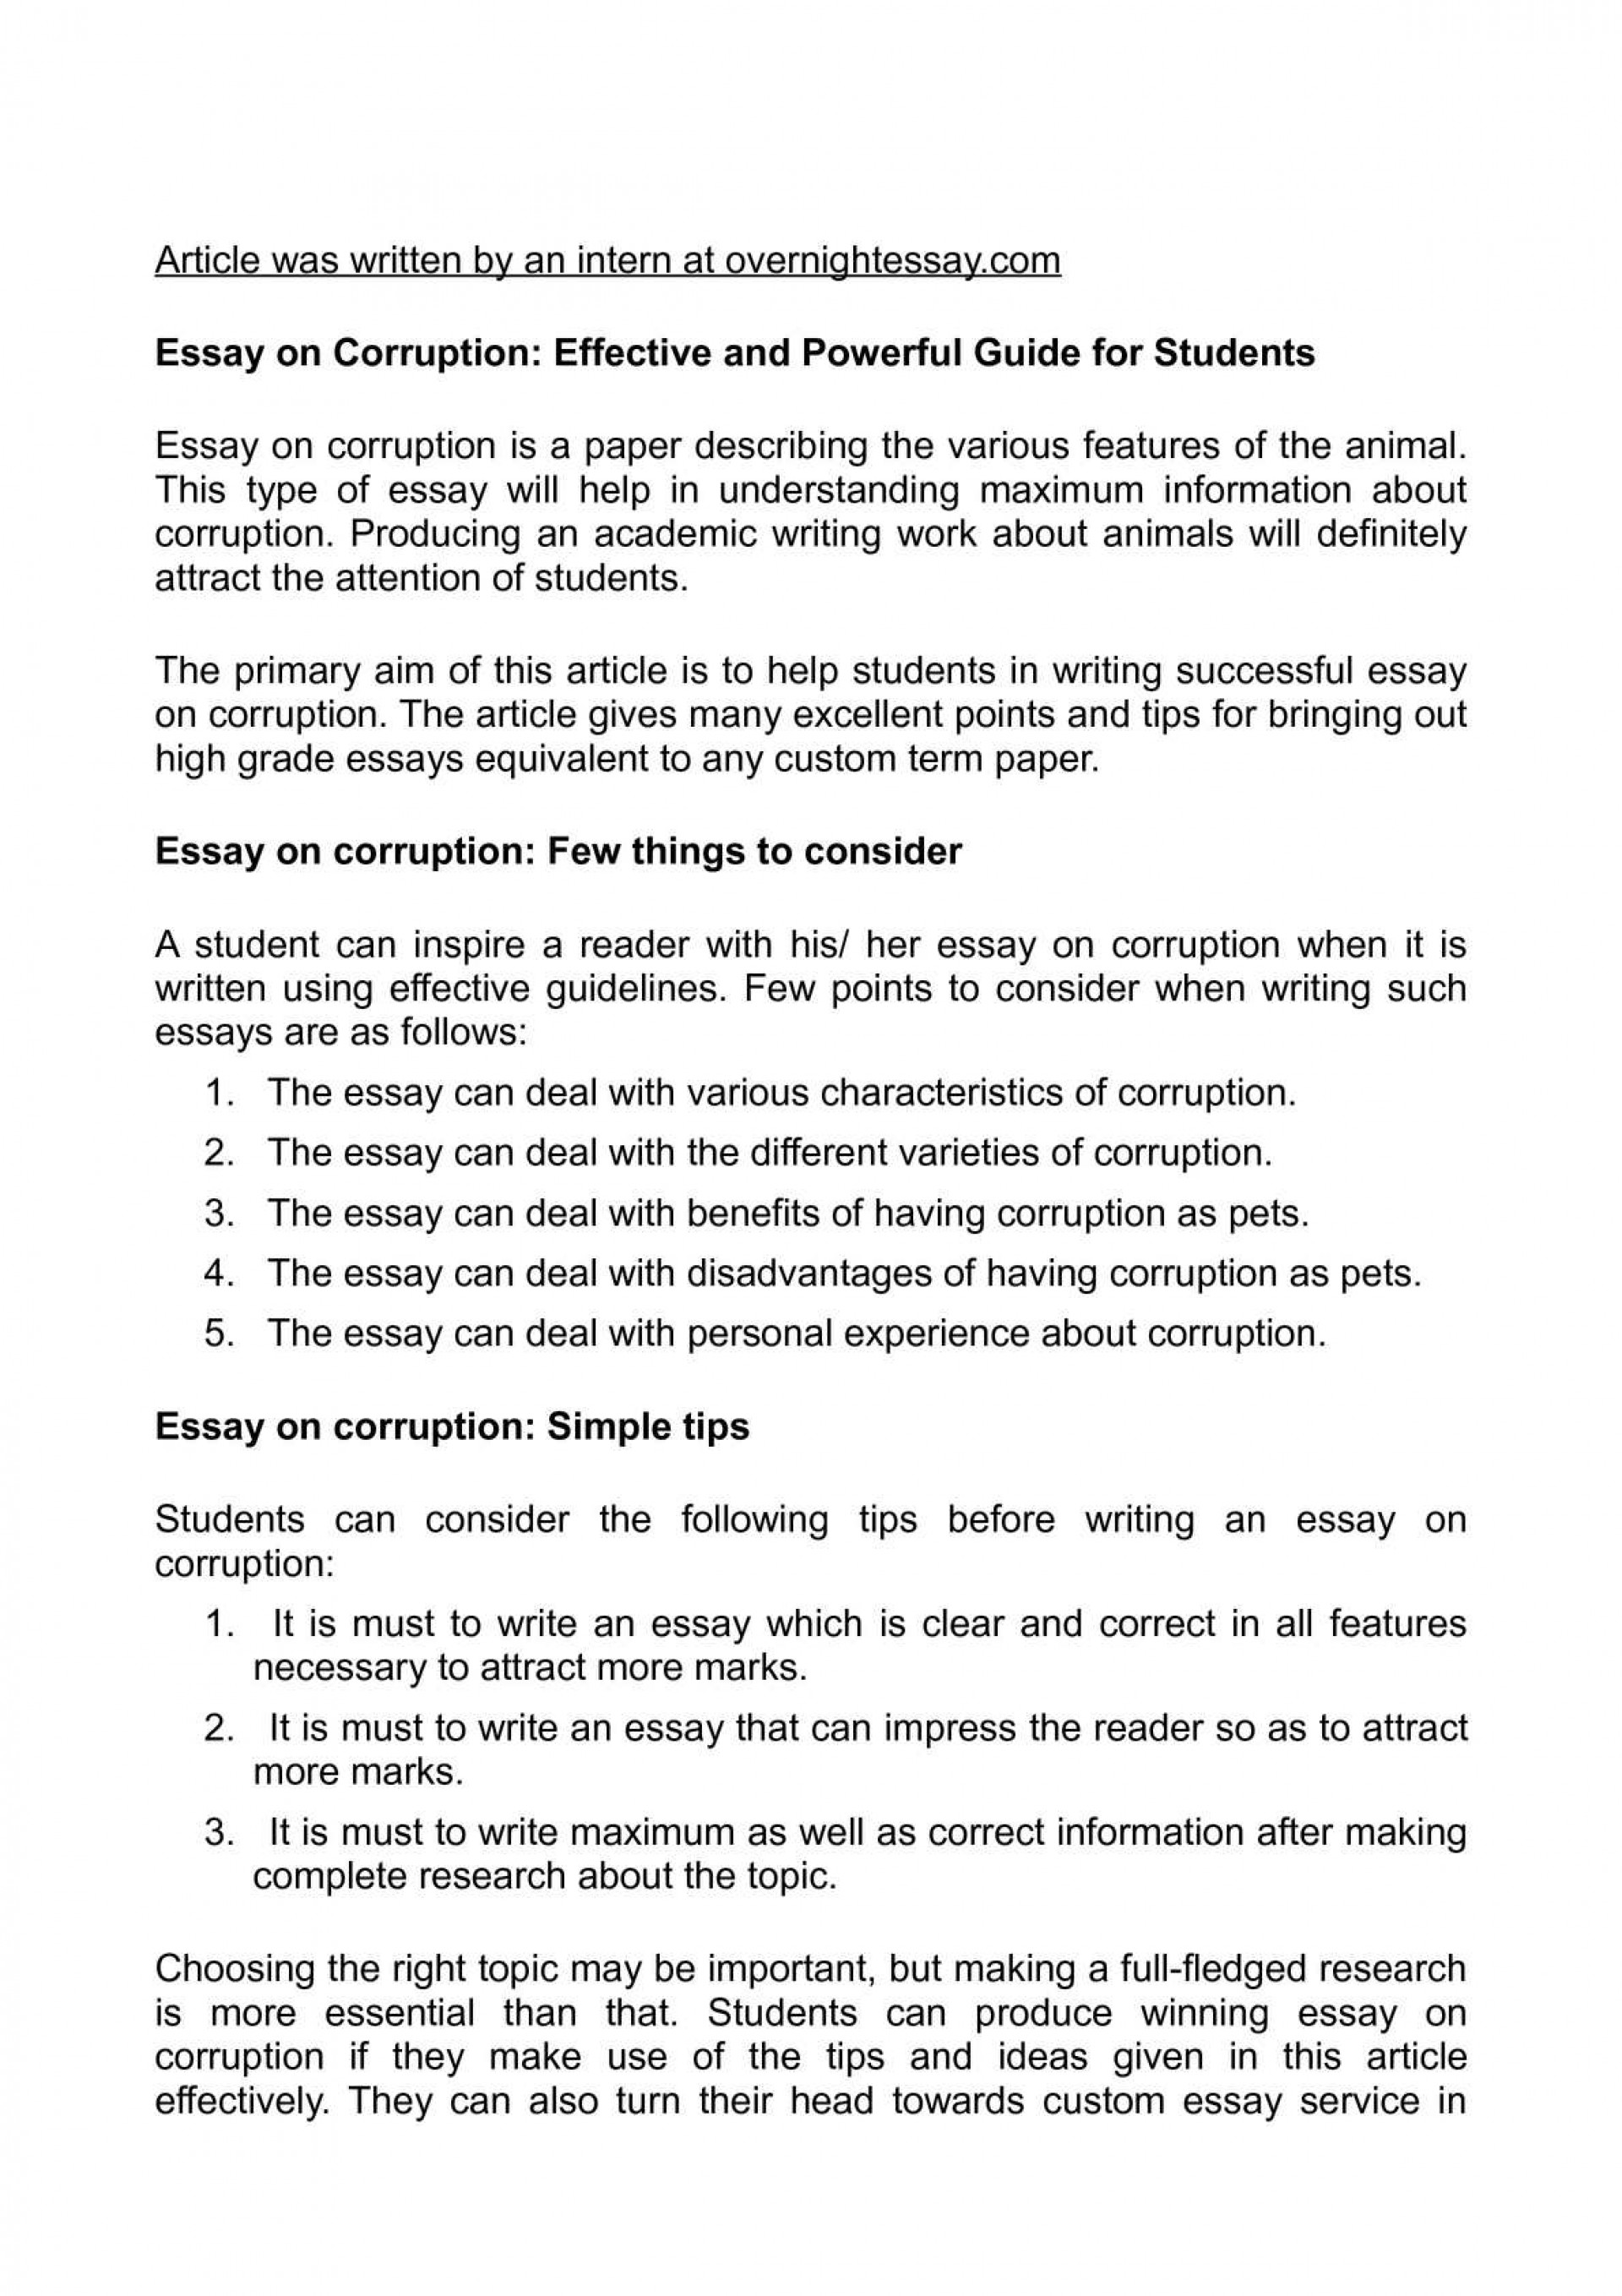 014 Reflective Essay Rubric Example Correct Writing Examples Topics Proper Form Marvelous Week 2 Guidelines With Scoring Marking Assessment 1920